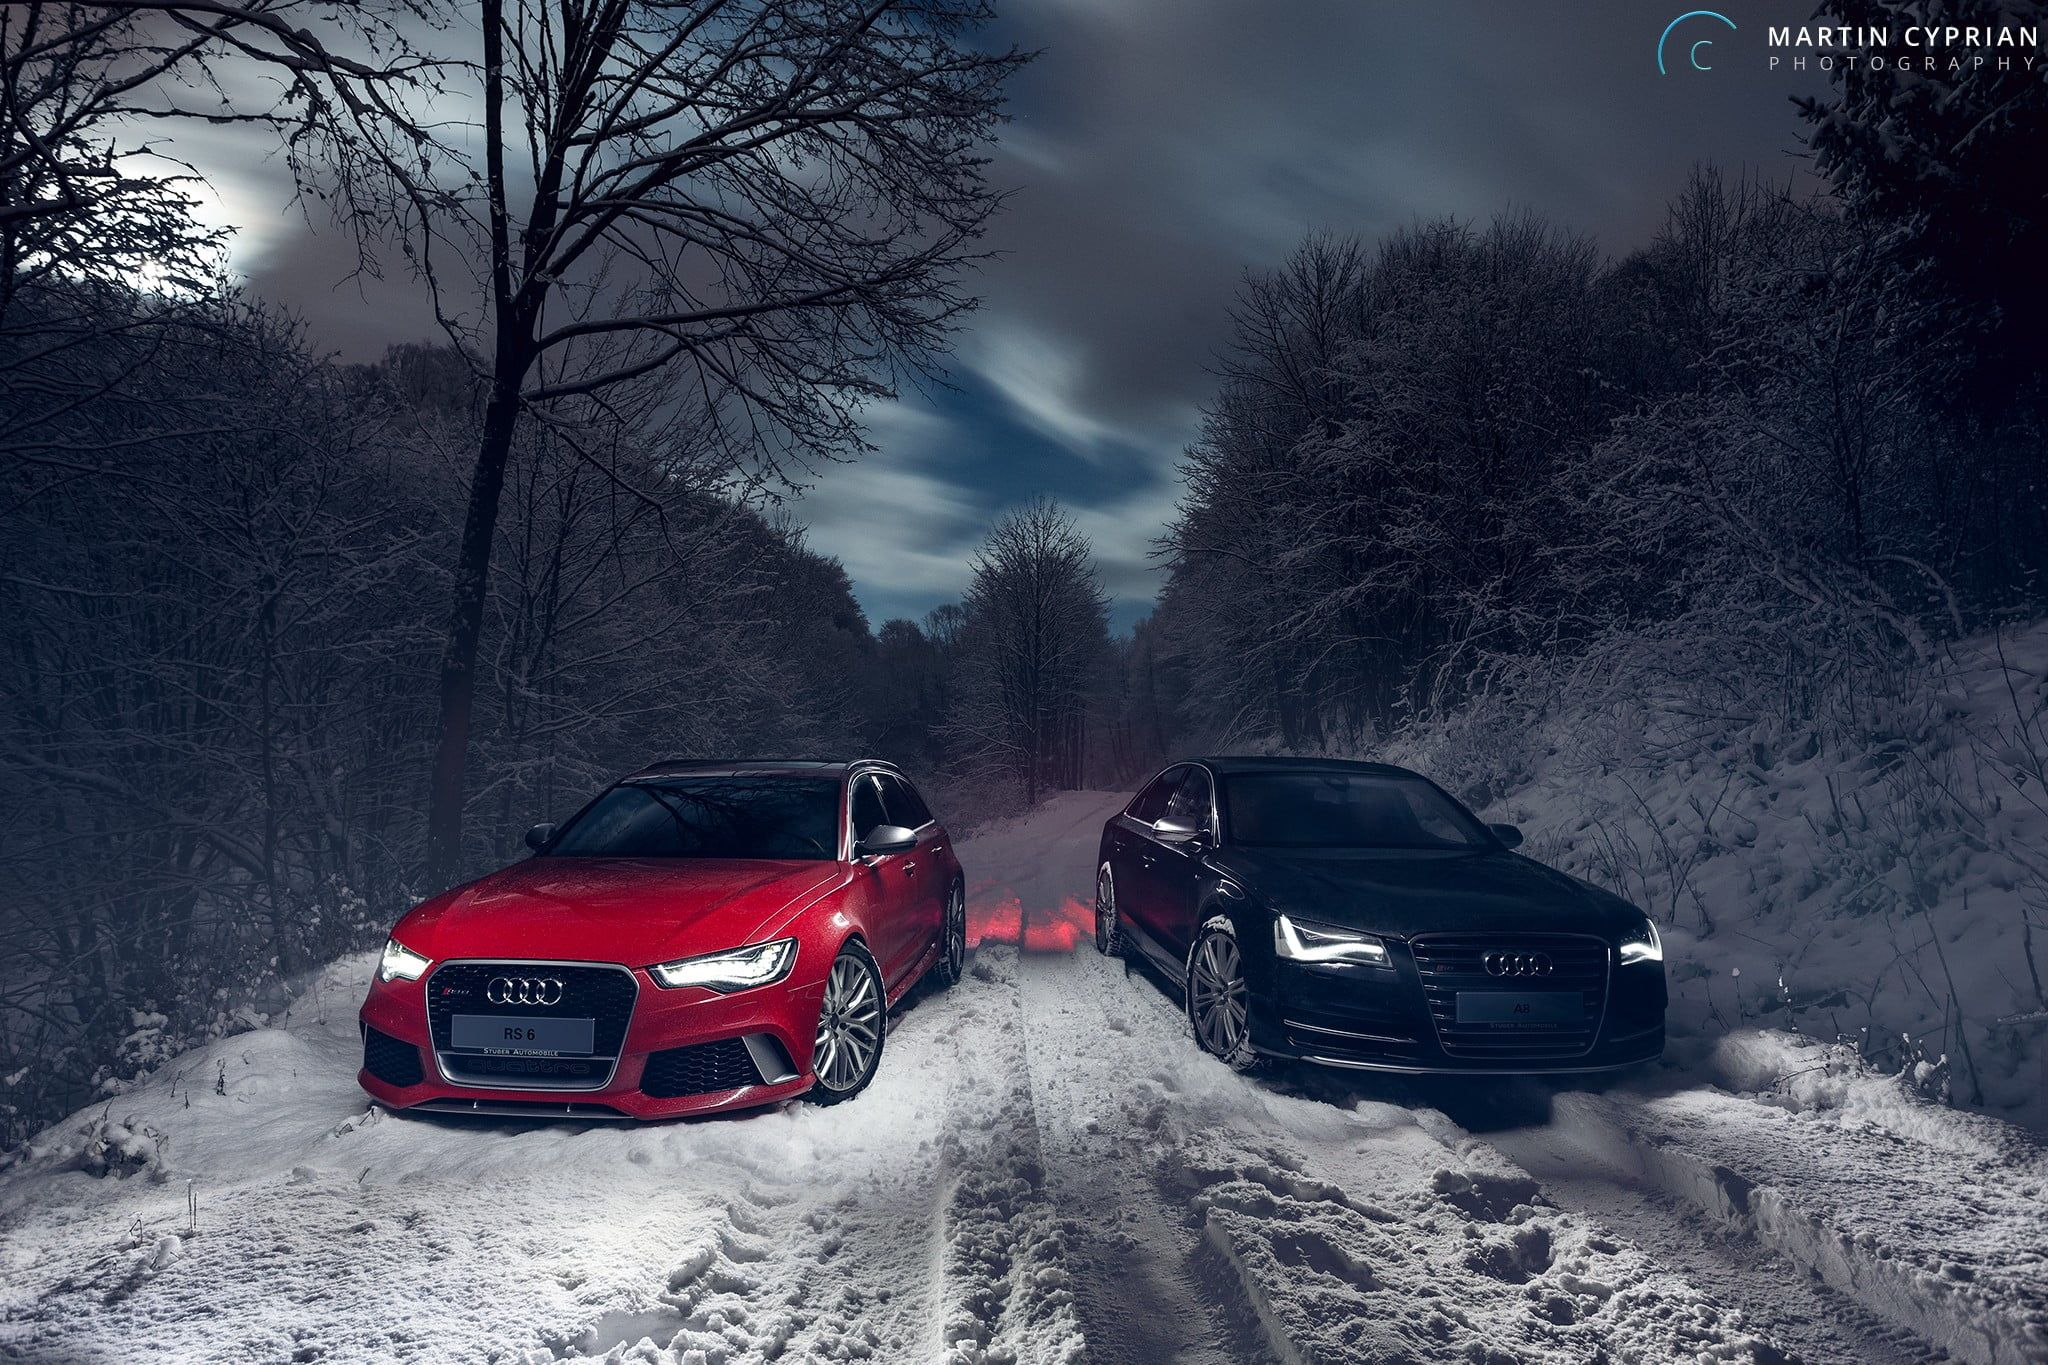 Two Black And Red Audi Cars Vehicle Car Audi Audi Rs6 Avant Audi A8 Winter Snow Trees Forest Long Exposure Clouds Martin Cy Audi Cars Red Audi Audi Rs6